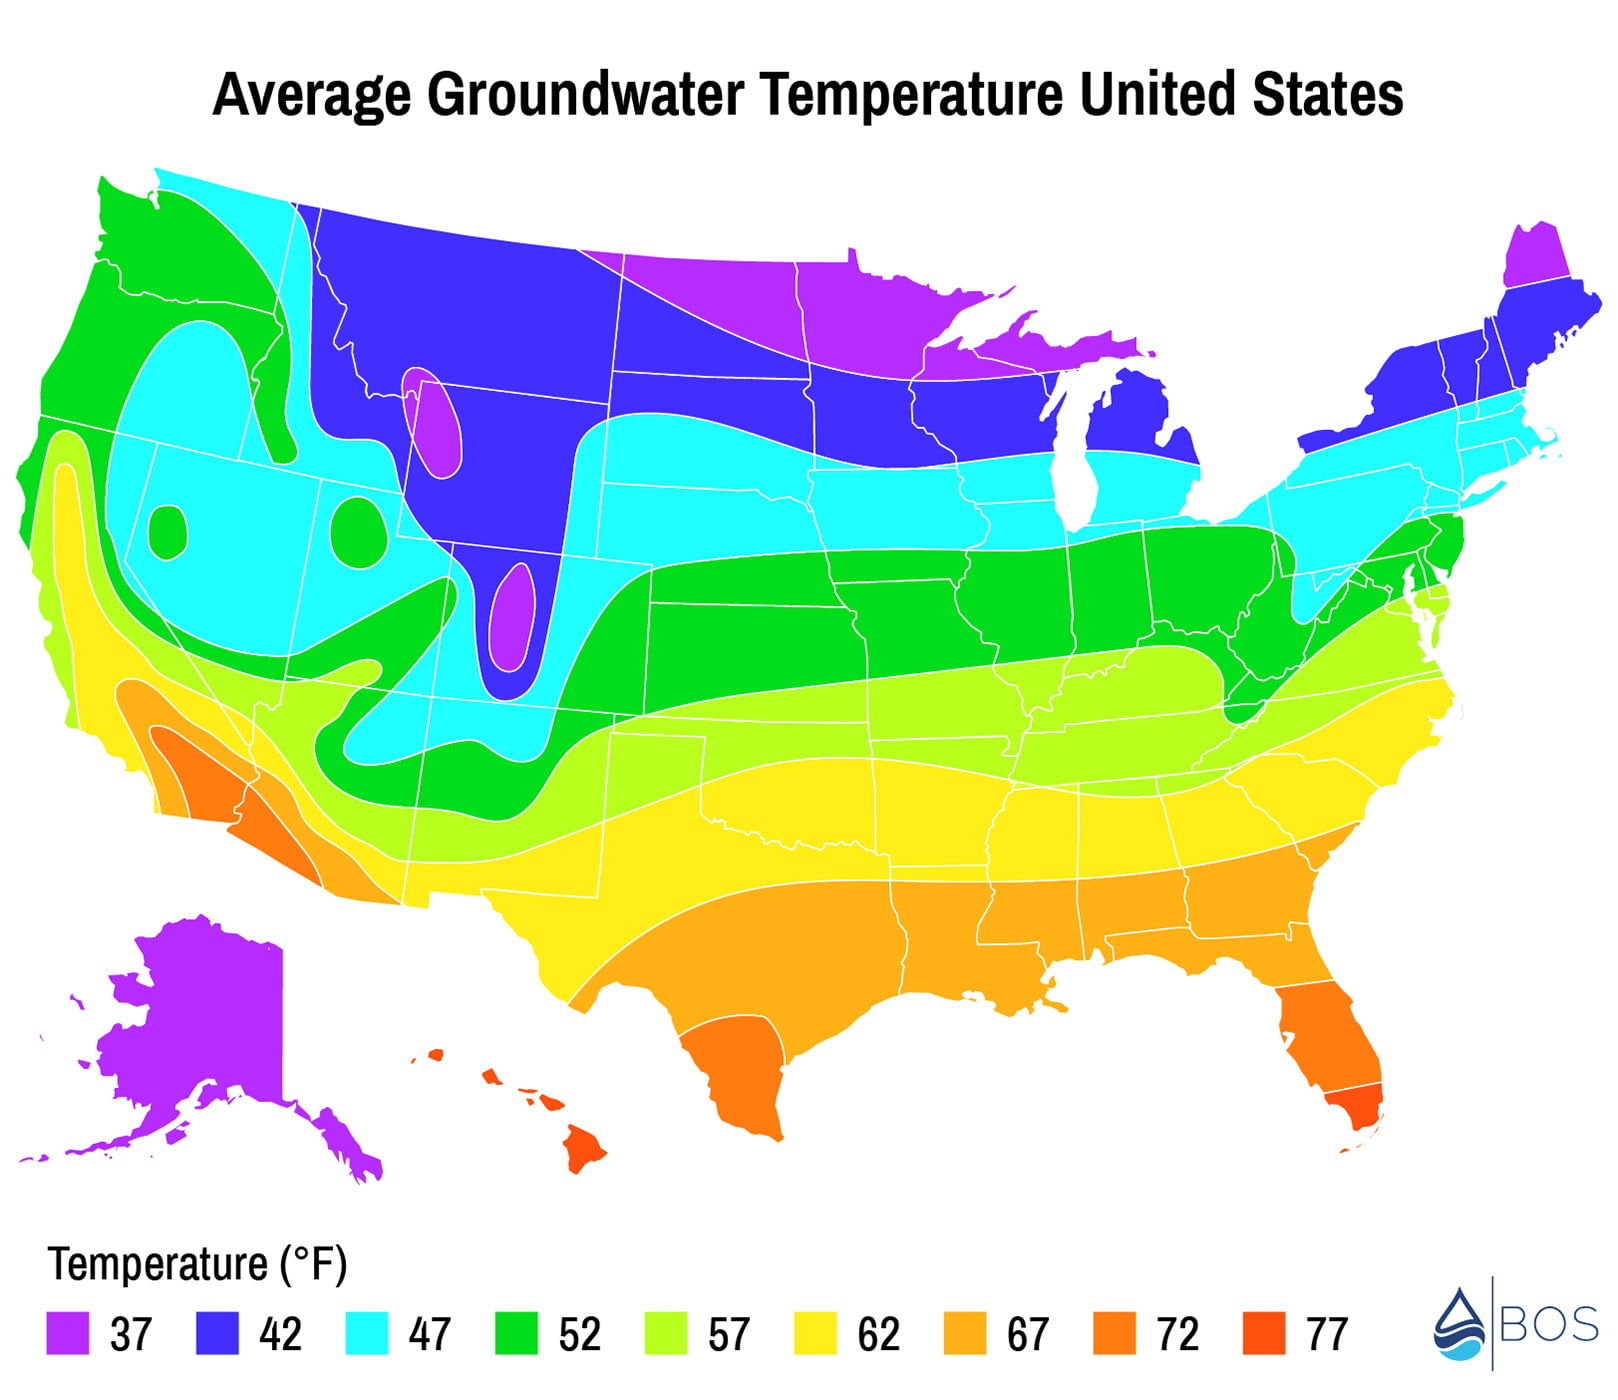 USA average groundwater temperature map colored